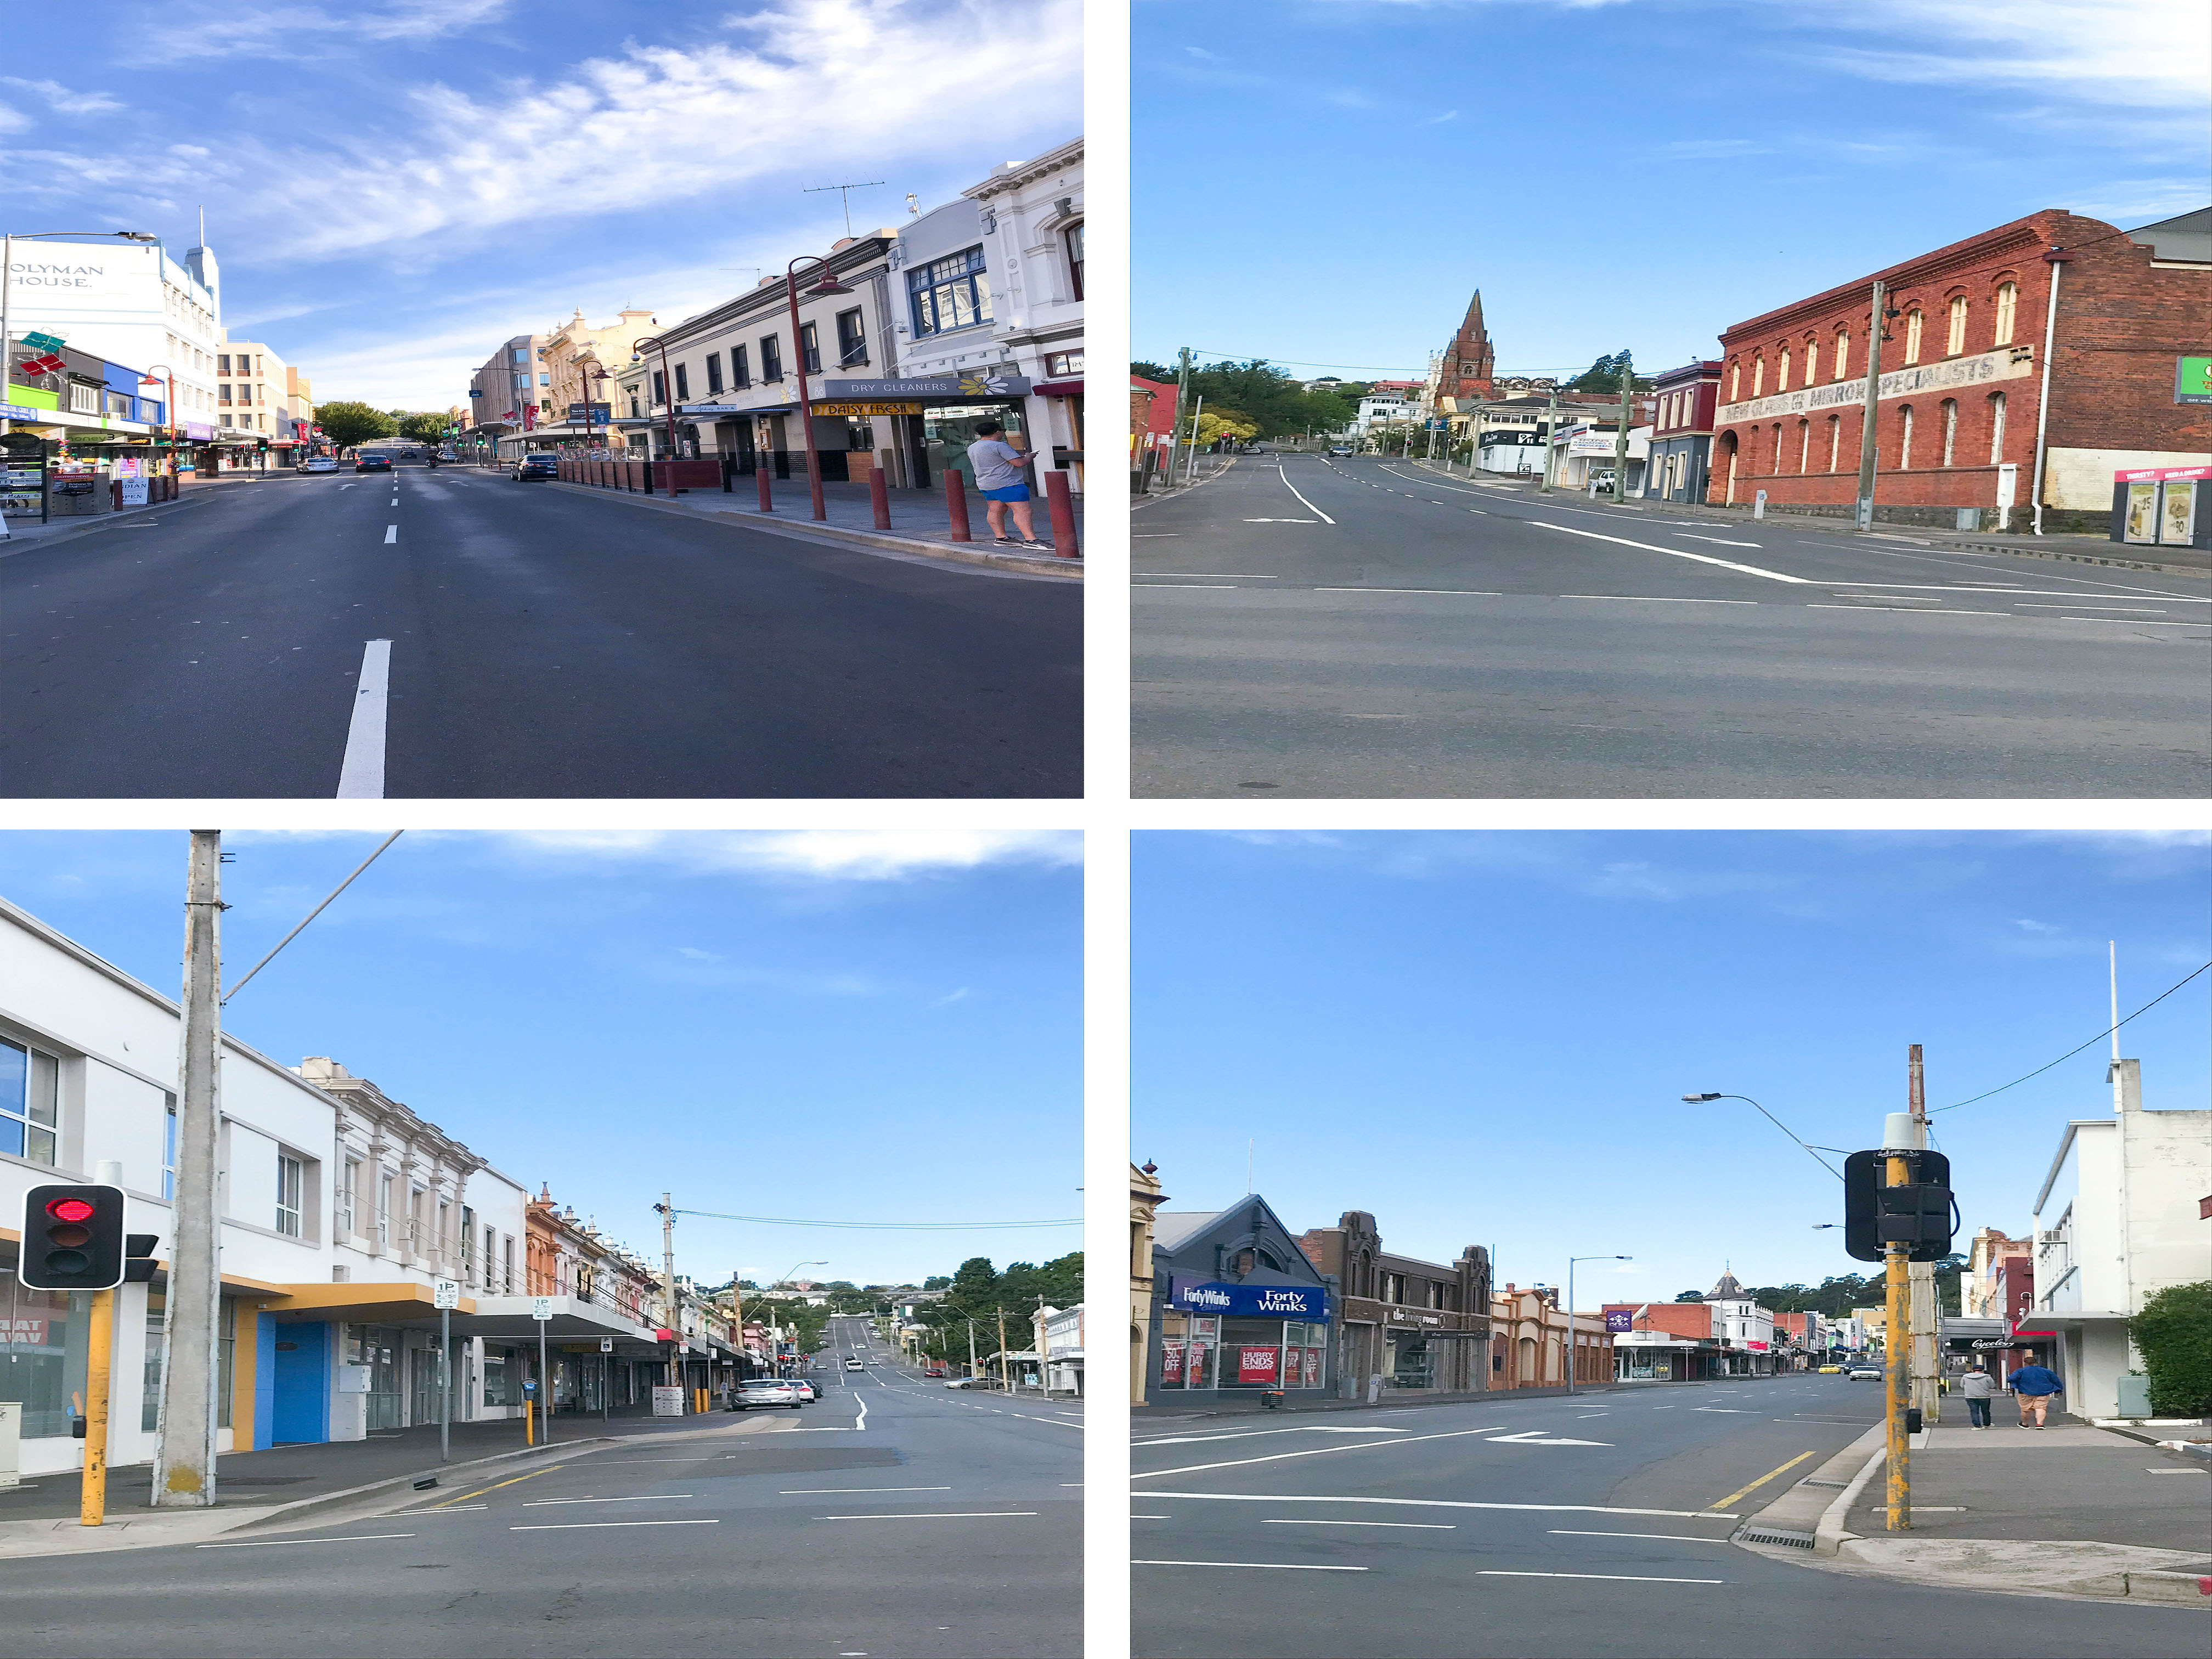 Streets in Launceston